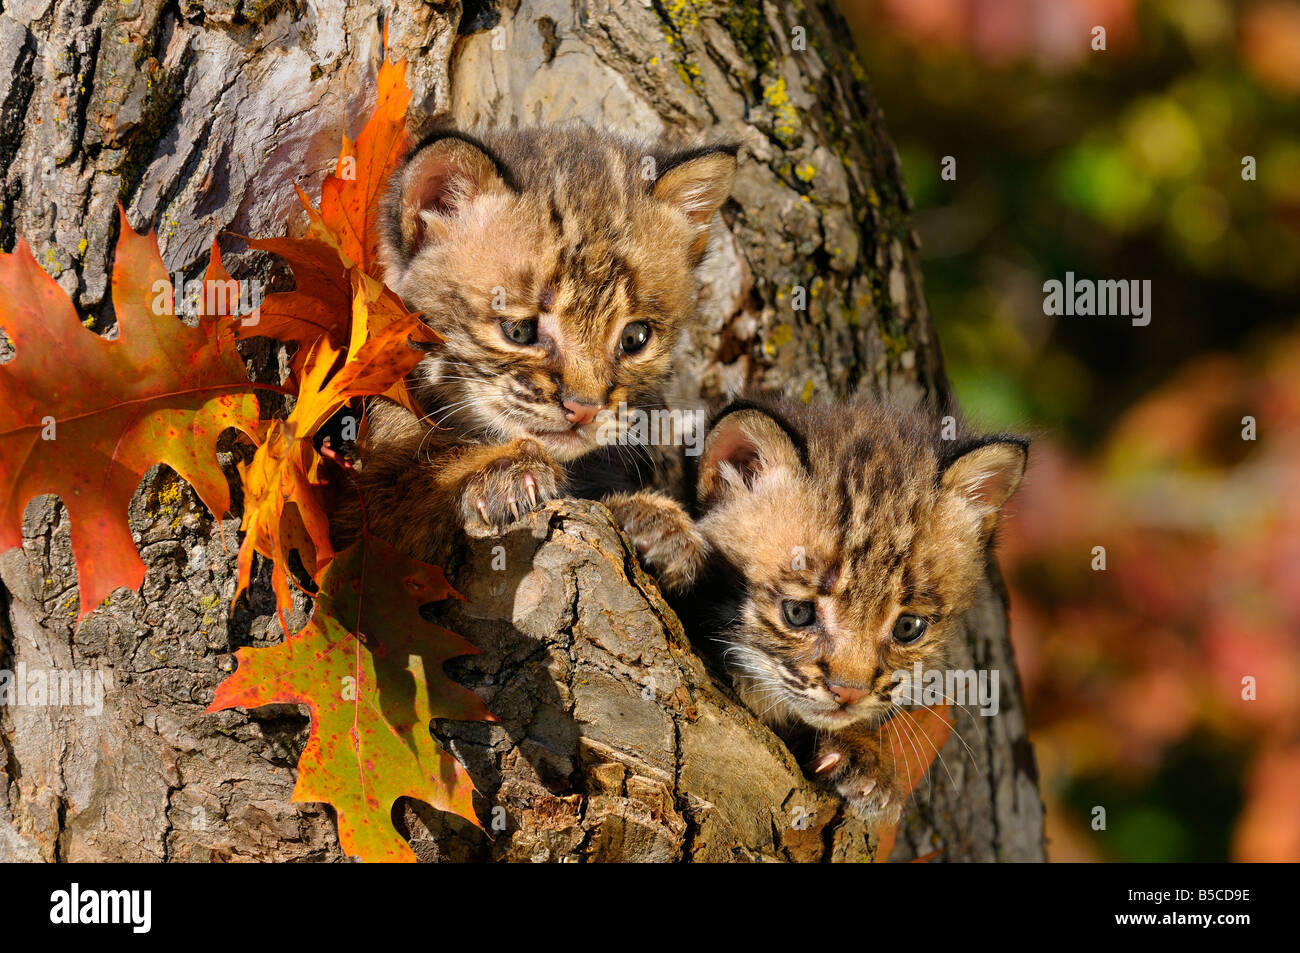 Pair of cautious Bobcat kittens peeking out from the hollow of a tree with Fall colors - Stock Image